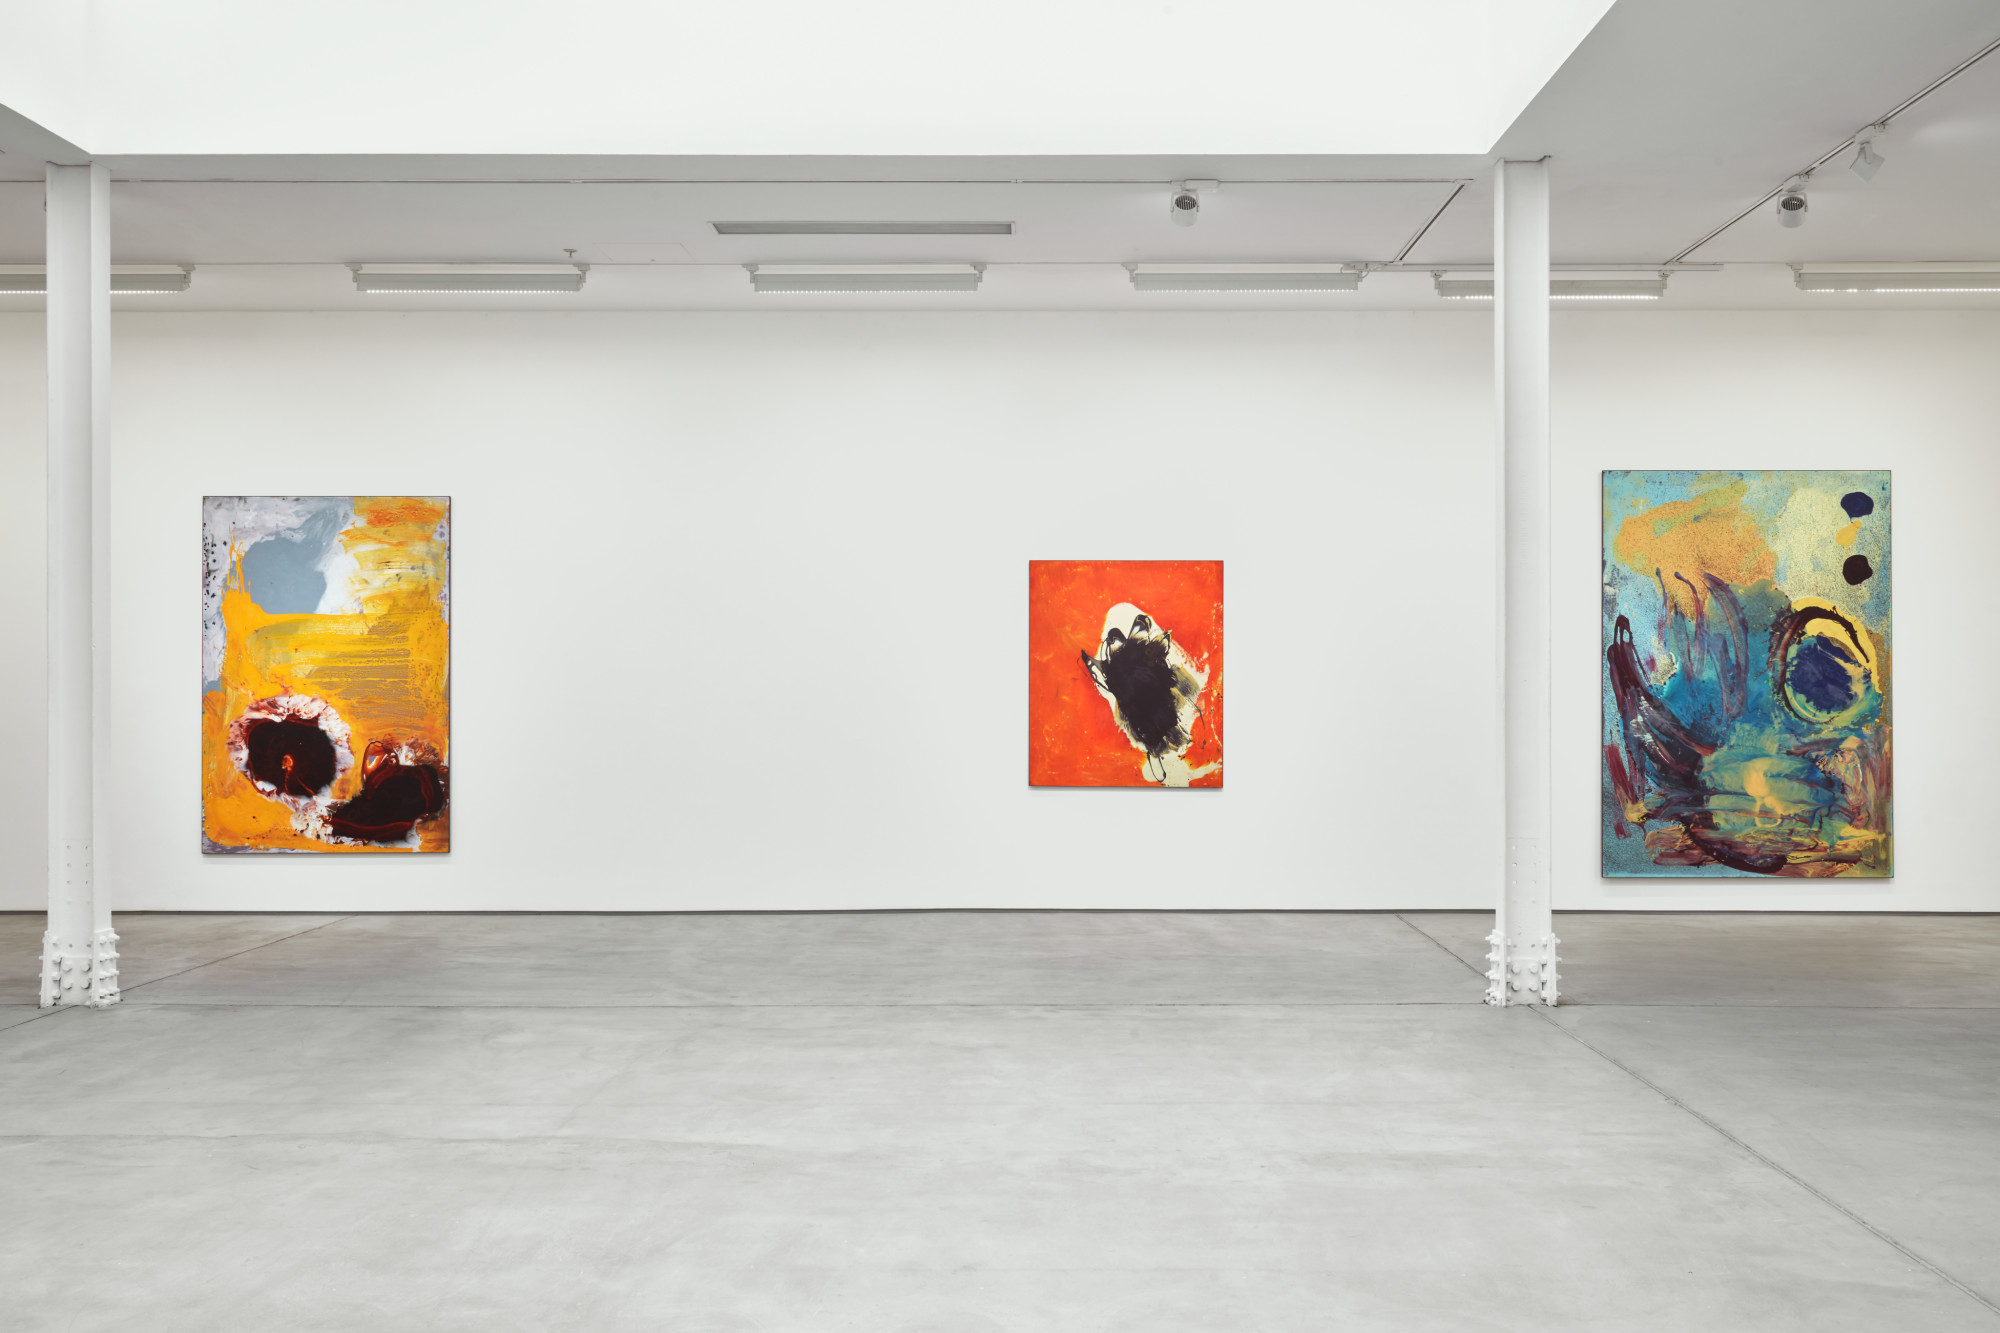 <p>Installation view, 2019<br />Photo by Robert Glowacki</p>